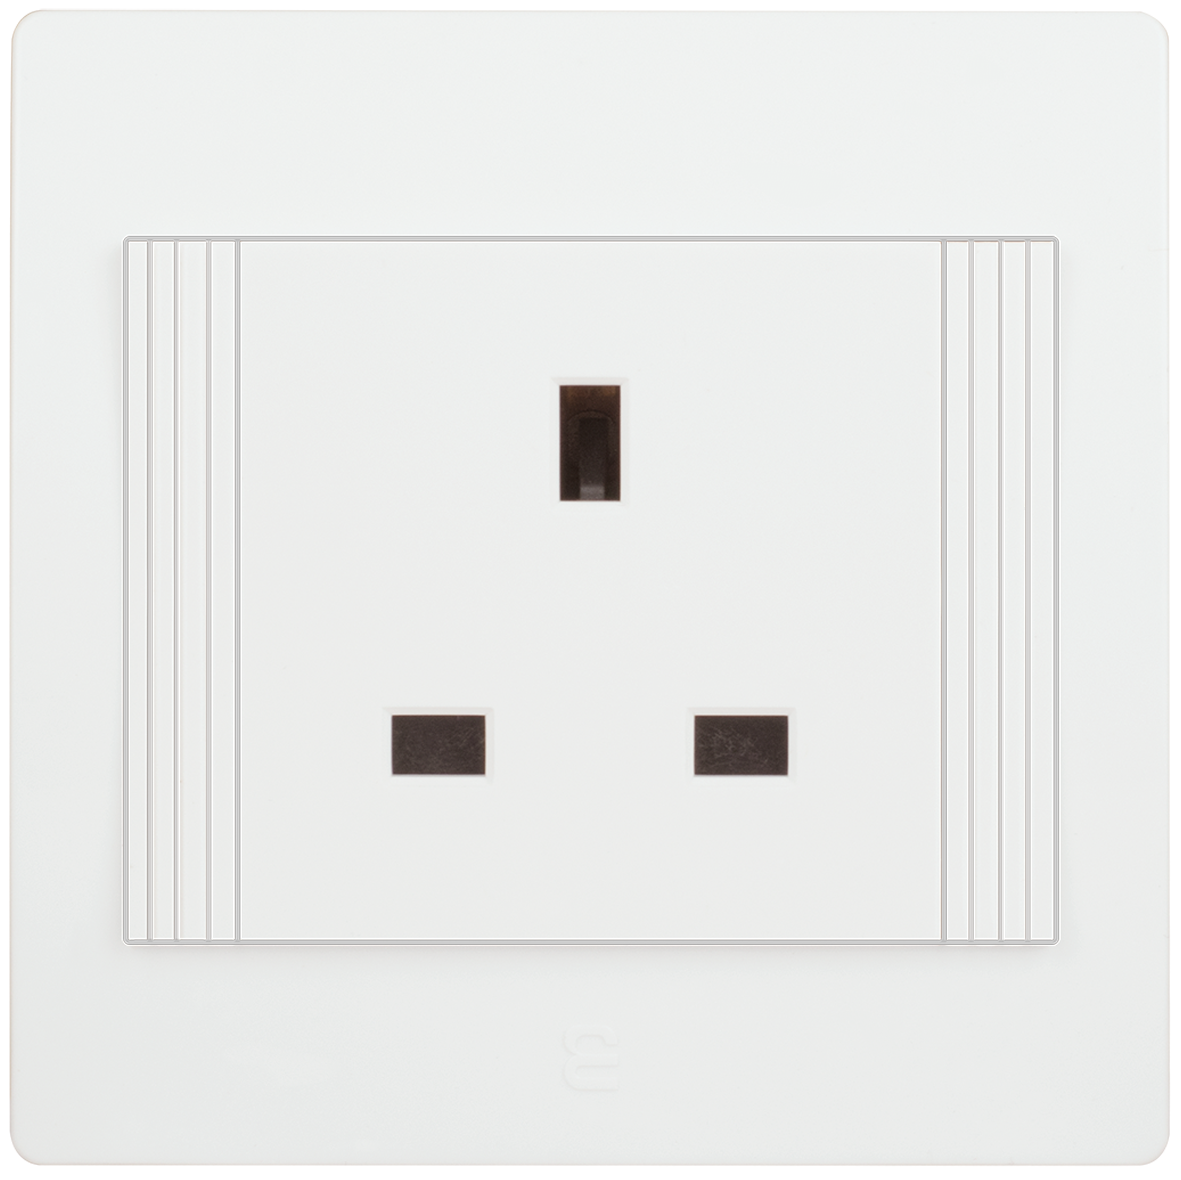 Socket british type décor